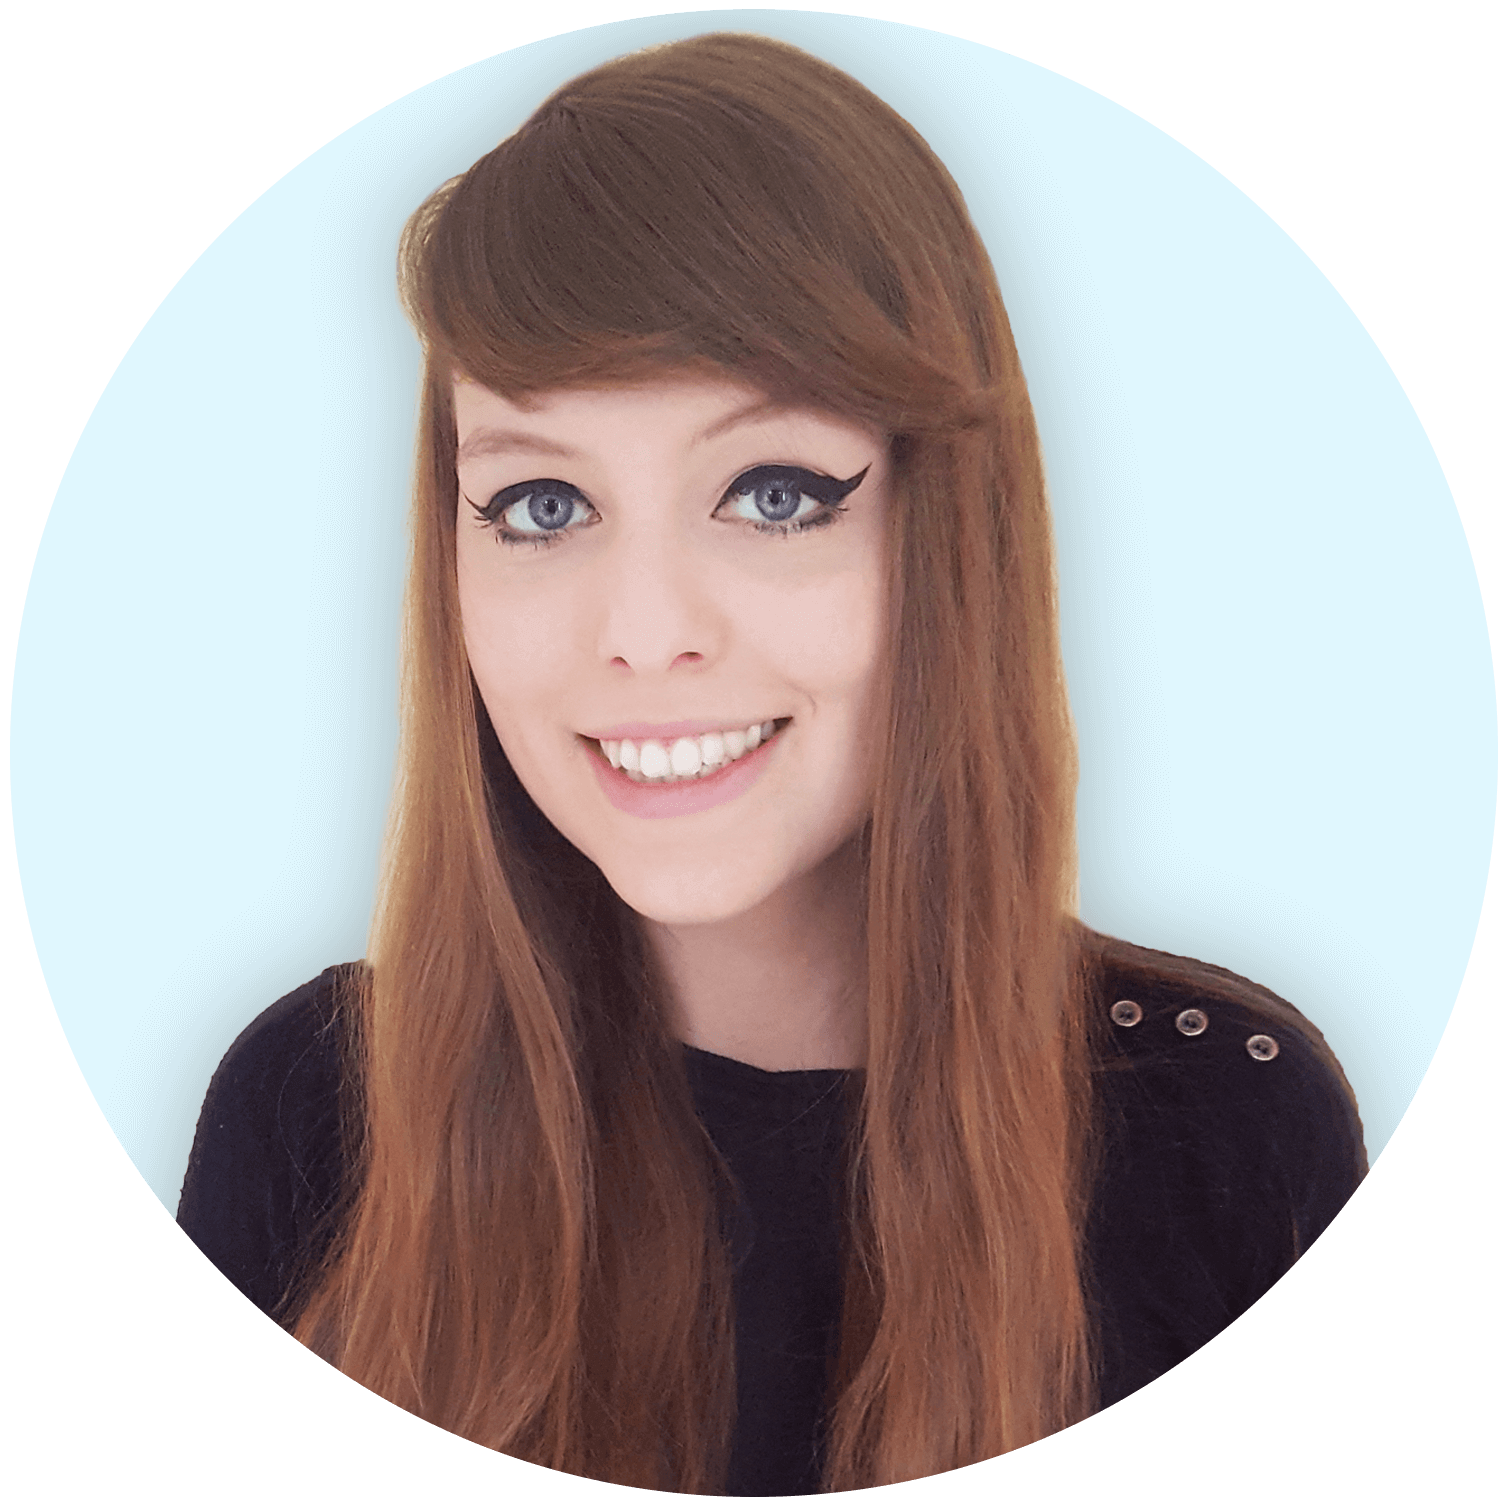 Adrianna Leszczyńska – brand & website designer, blogger, developer & creative entrepreneur behind MintSwift. I help creative entrepreneurs bring their vision of brand & website to life by creating one-of-a-kind, strategic and cohesive designs